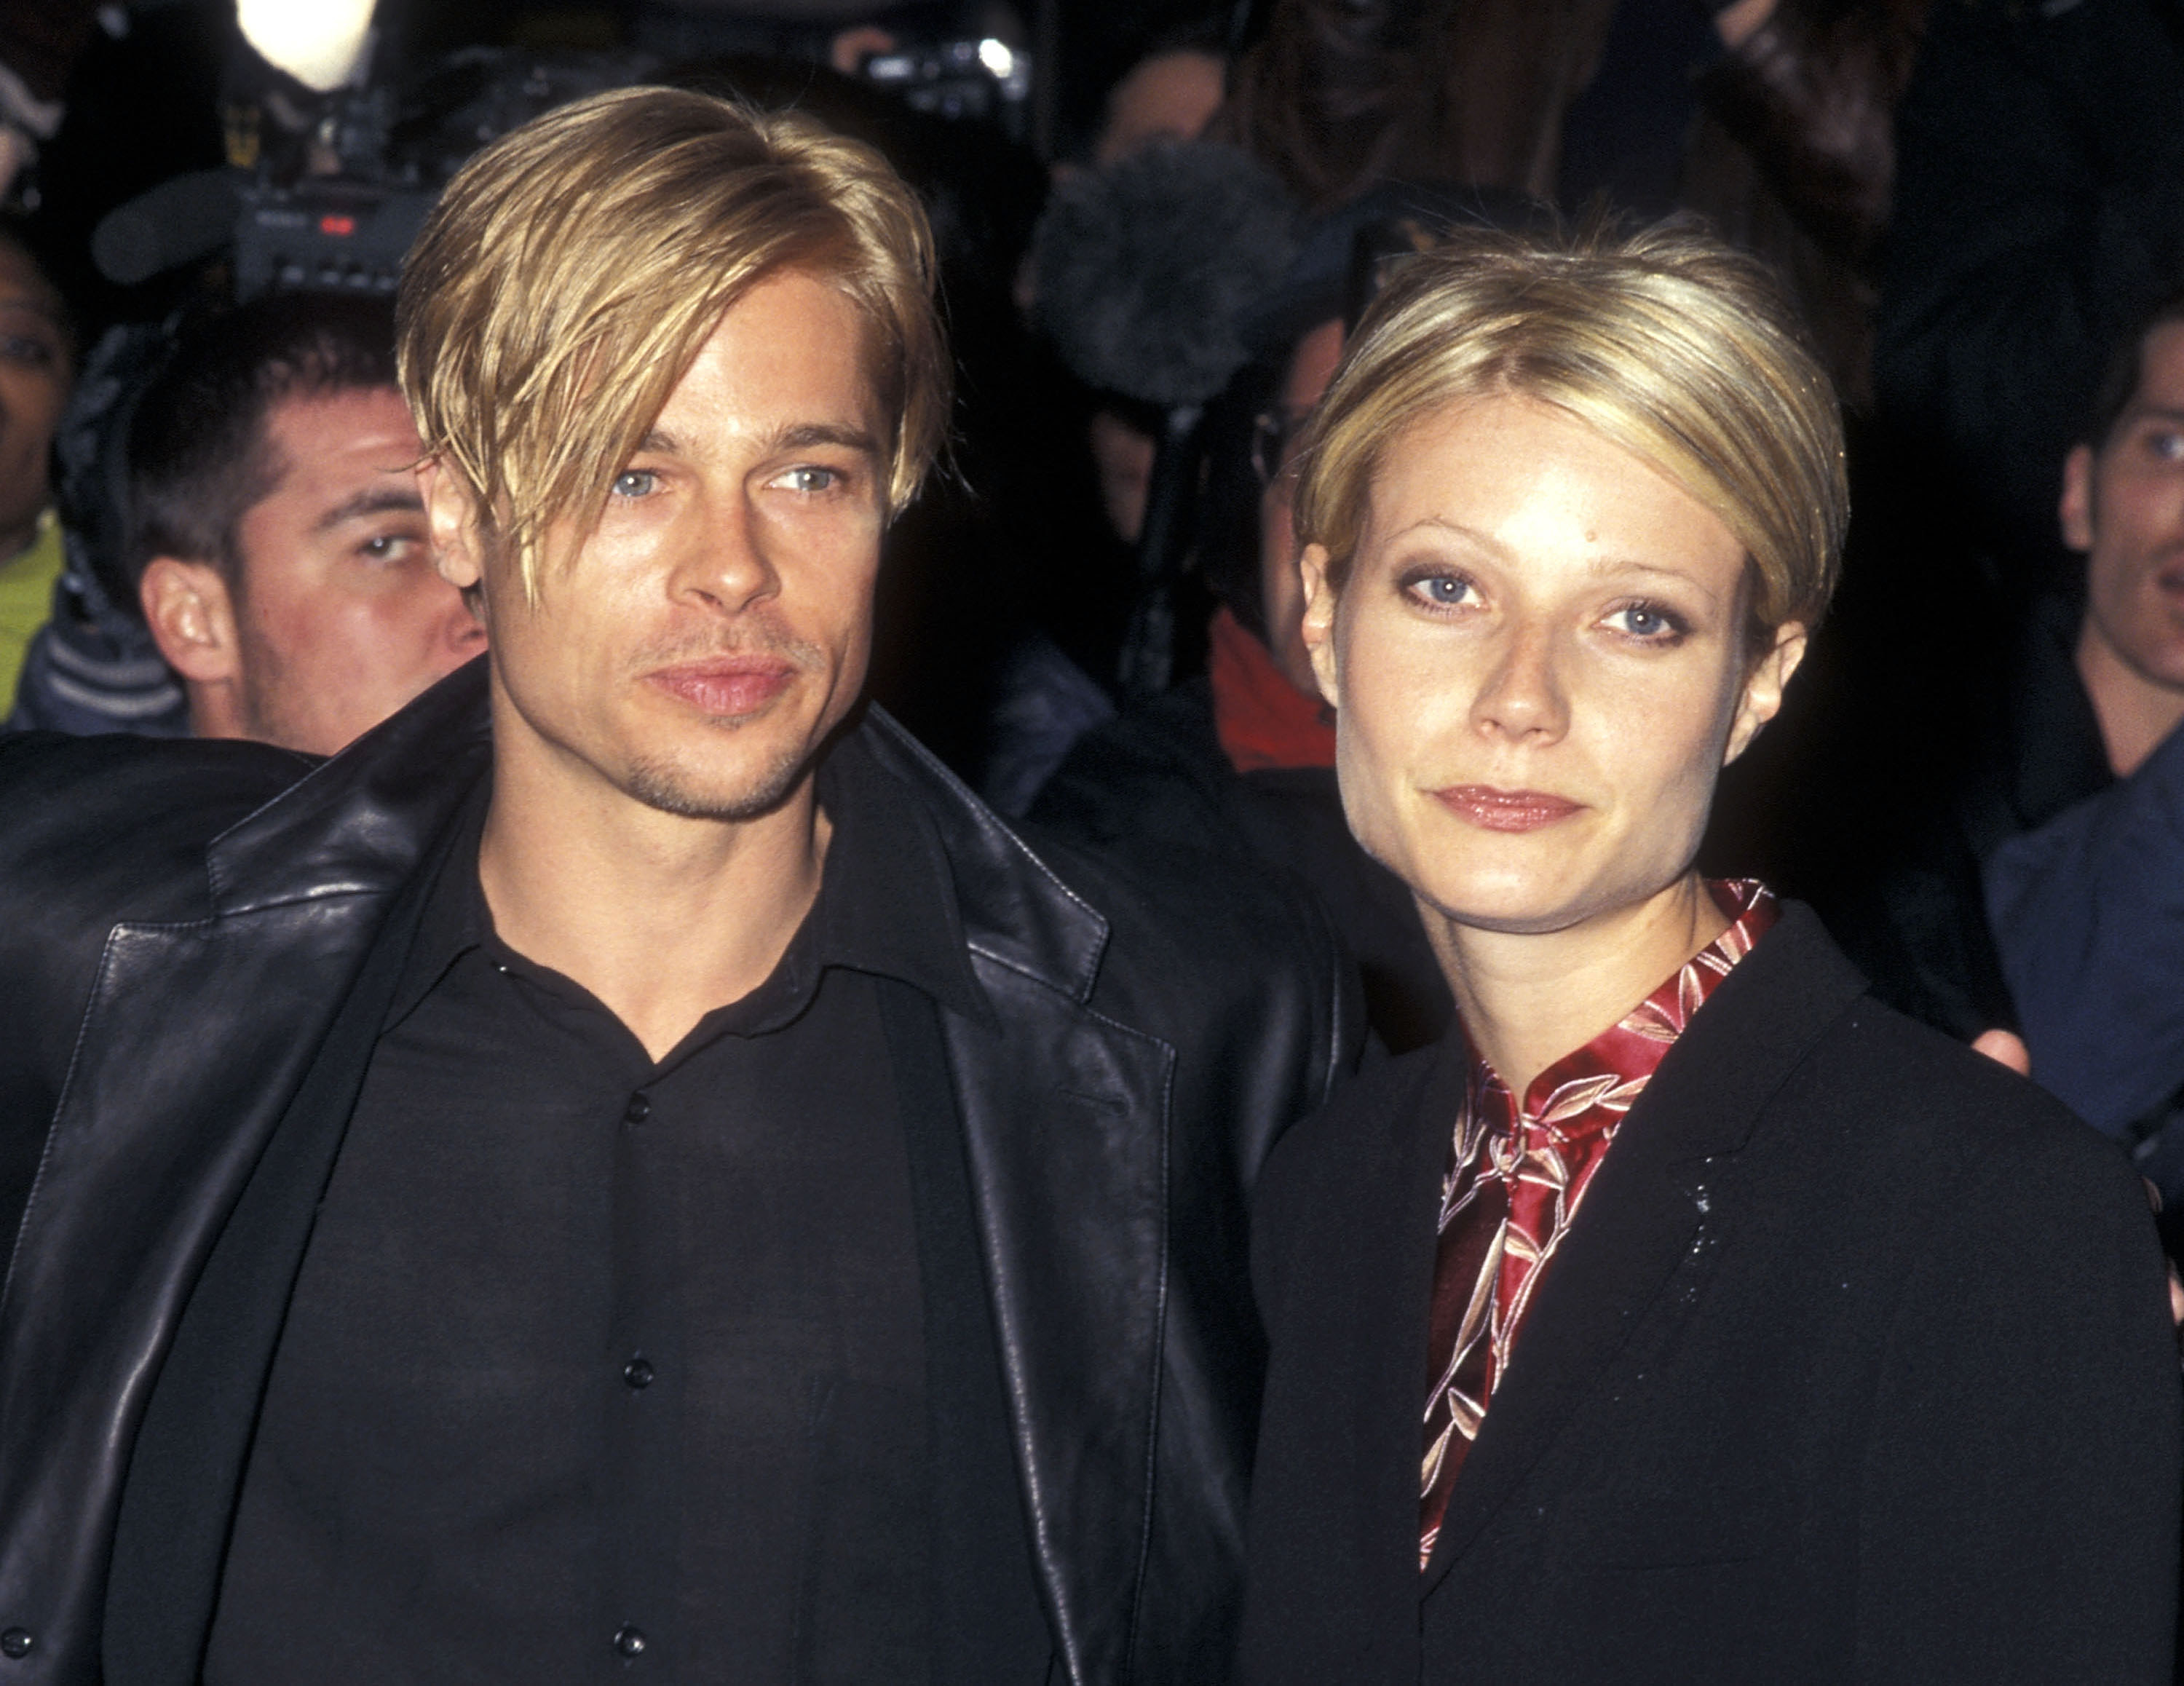 Gwyneth and Brad have the same short blonde parted to the side while wearing black blazers